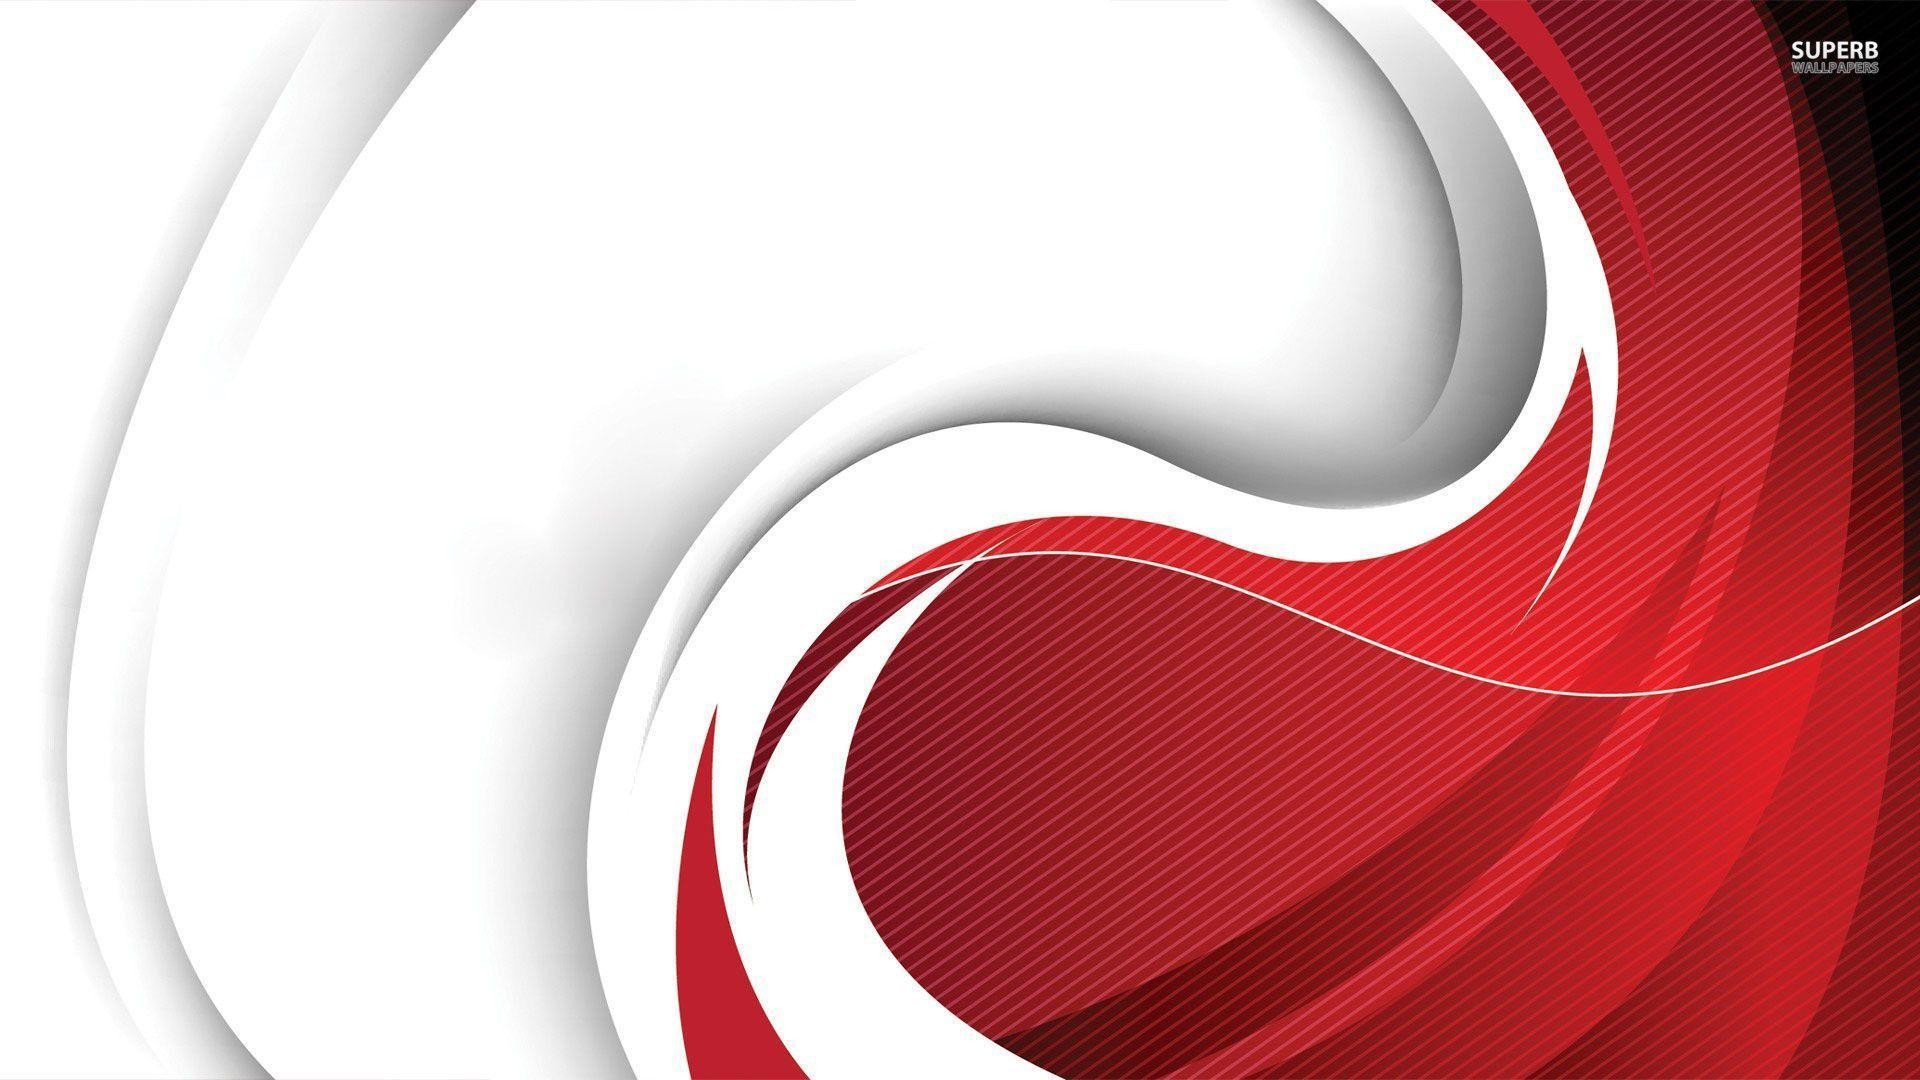 1920x1080 White And Red Abstract Background Pictures 5 HD Wallpapers .